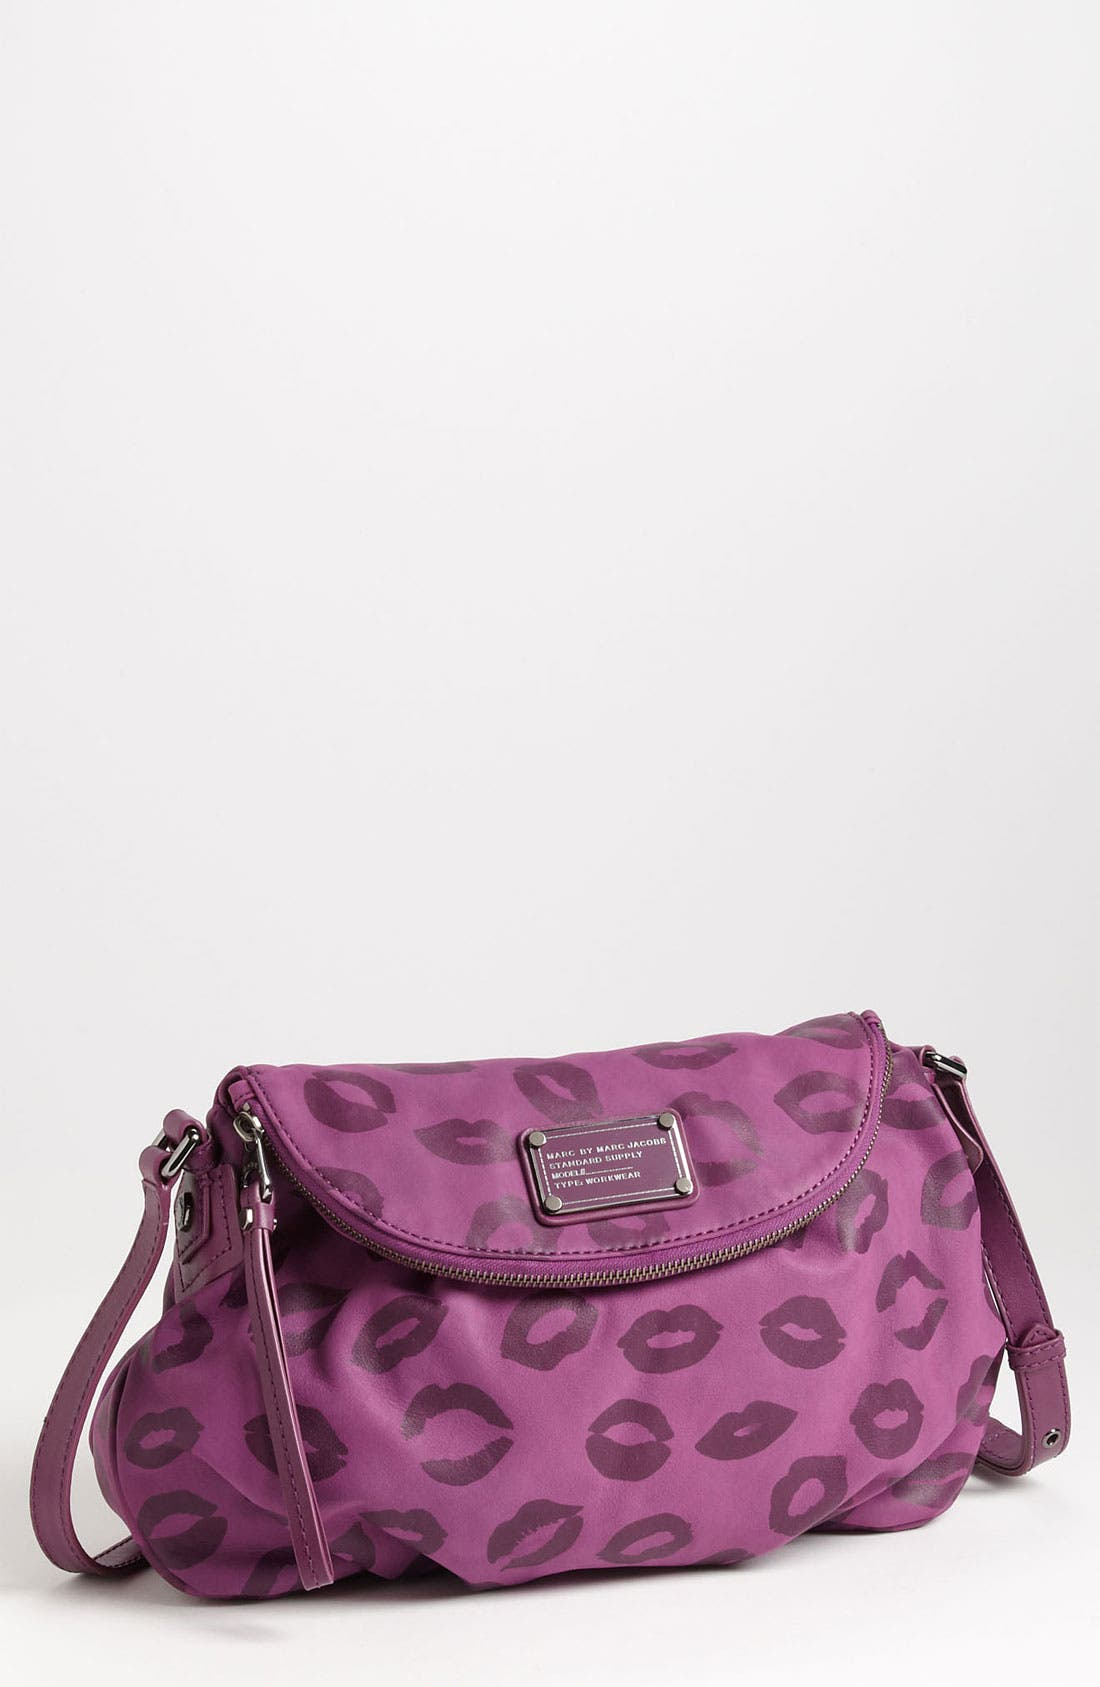 Main Image - MARC BY MARC JACOBS 'Classic Q Natasha - Smack' Leather Crossbody Bag